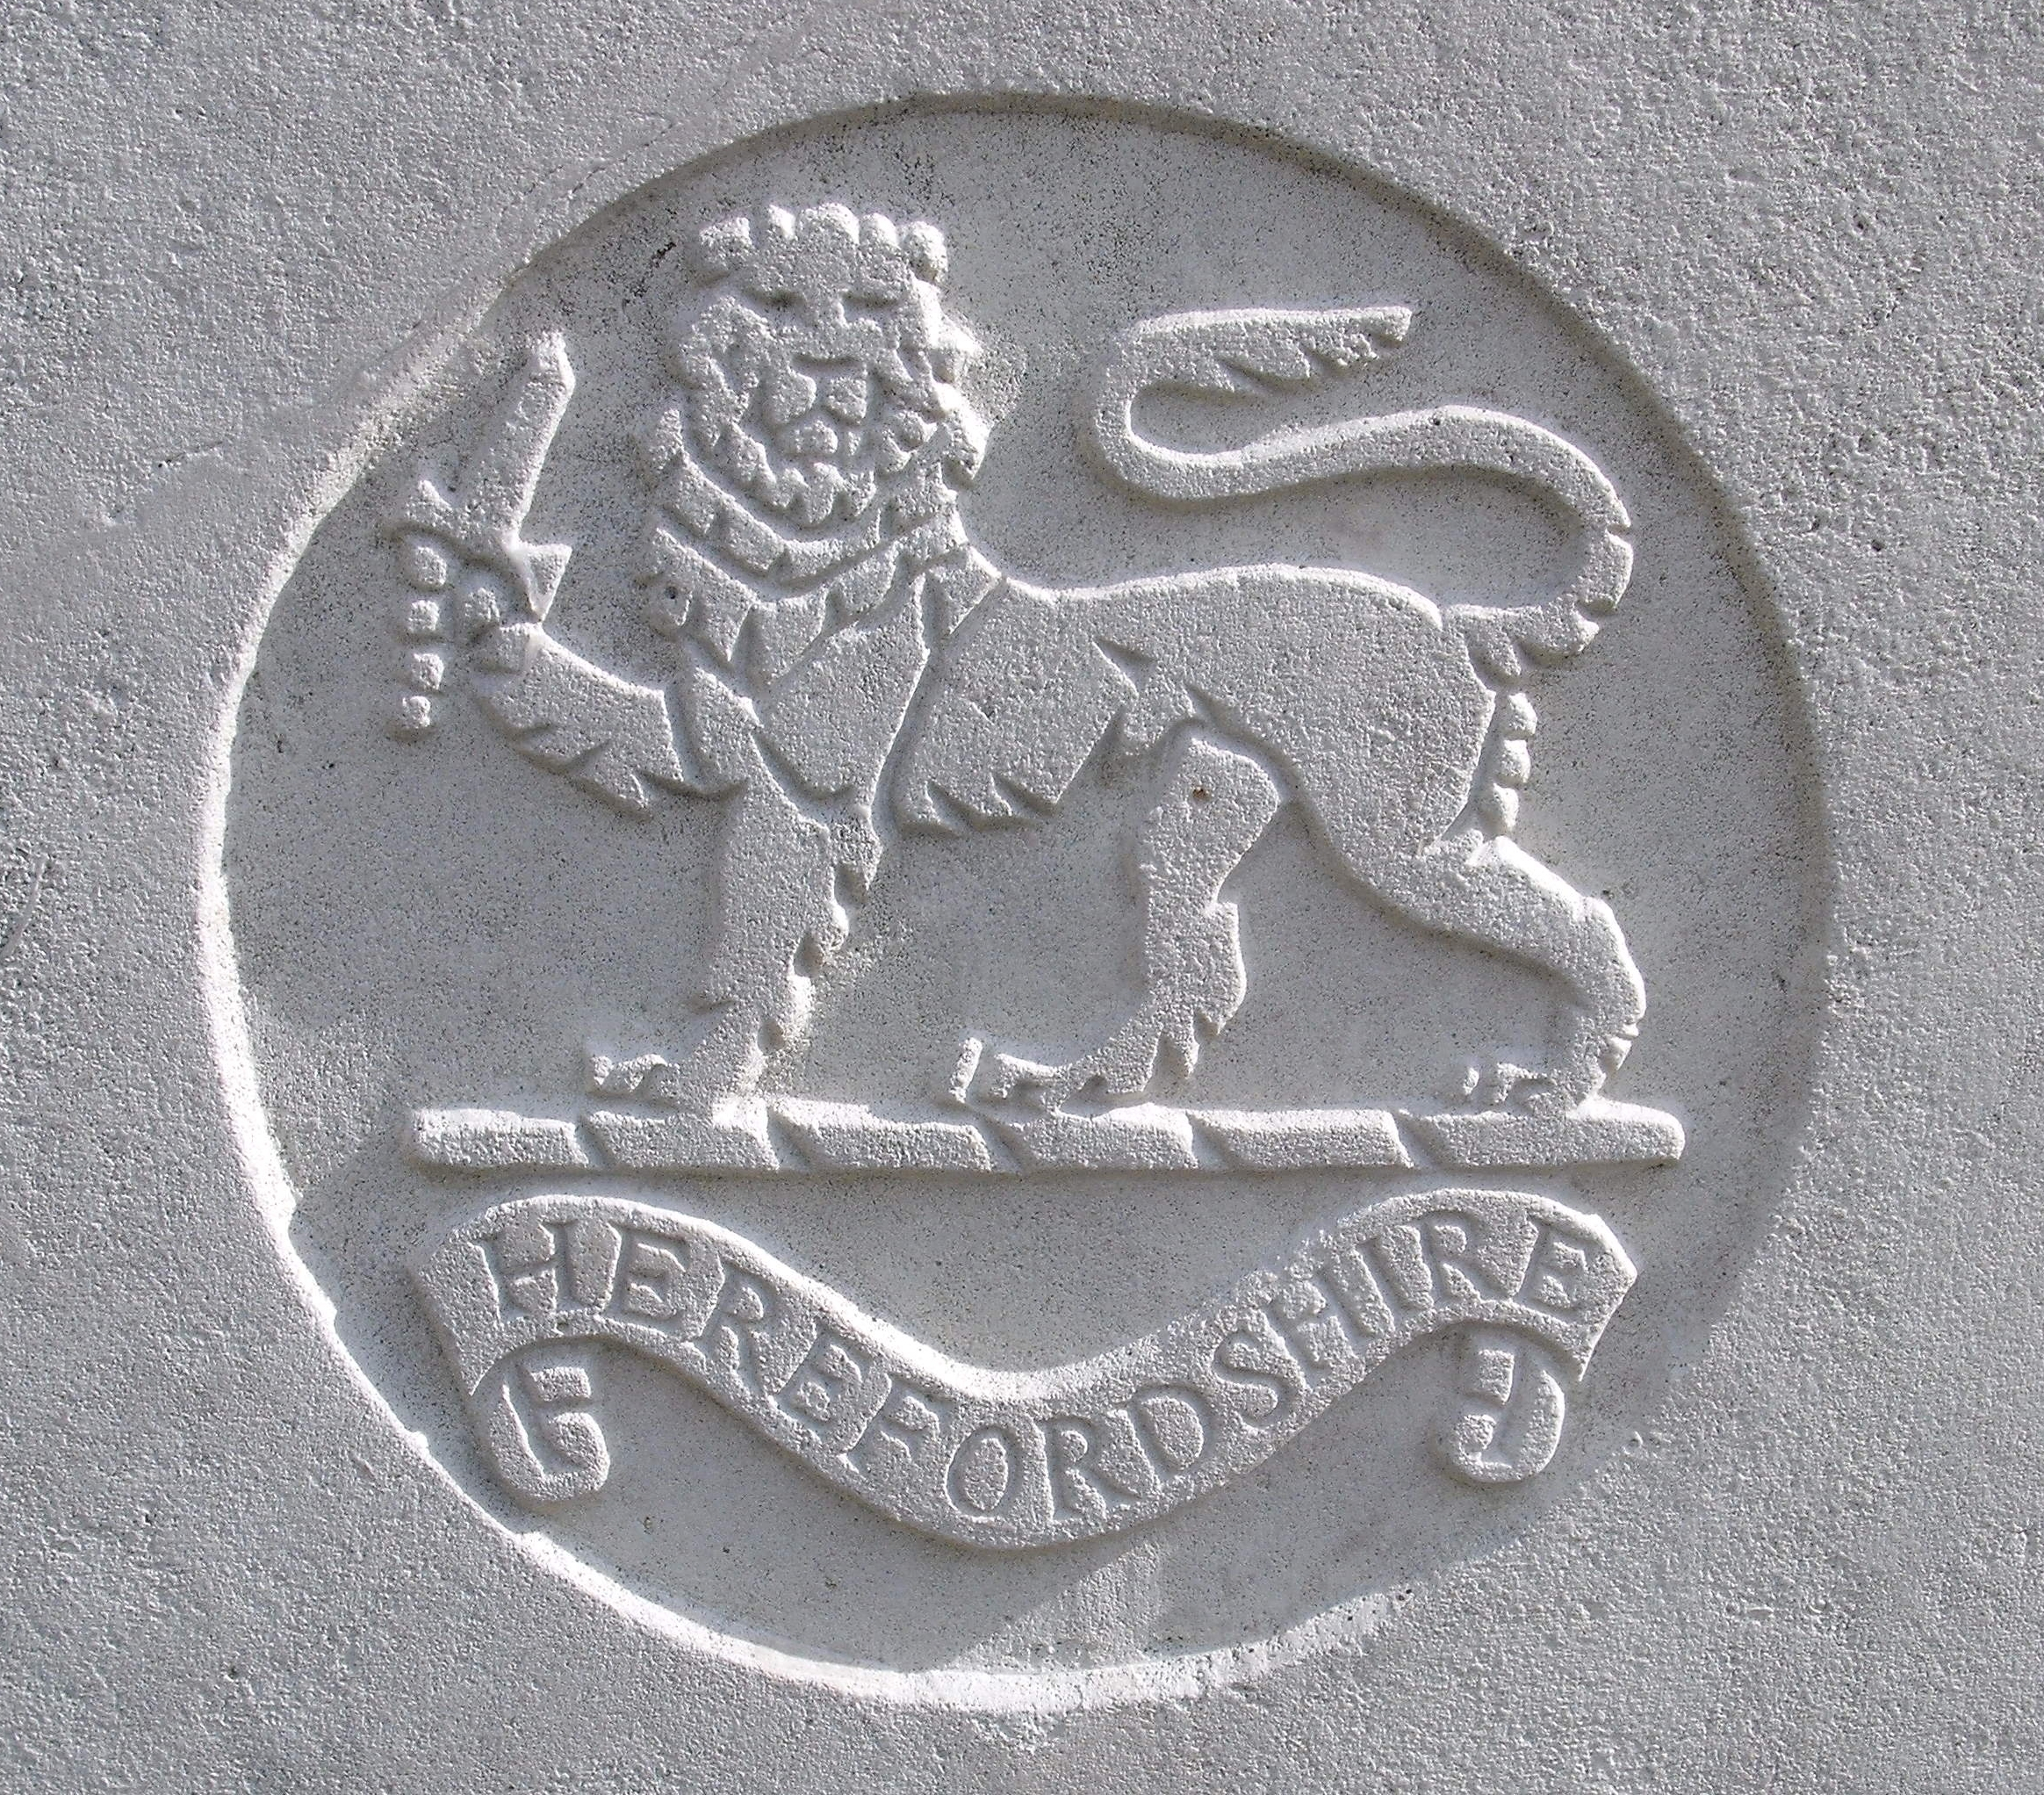 Capbadge of the Herefordshire Regiment